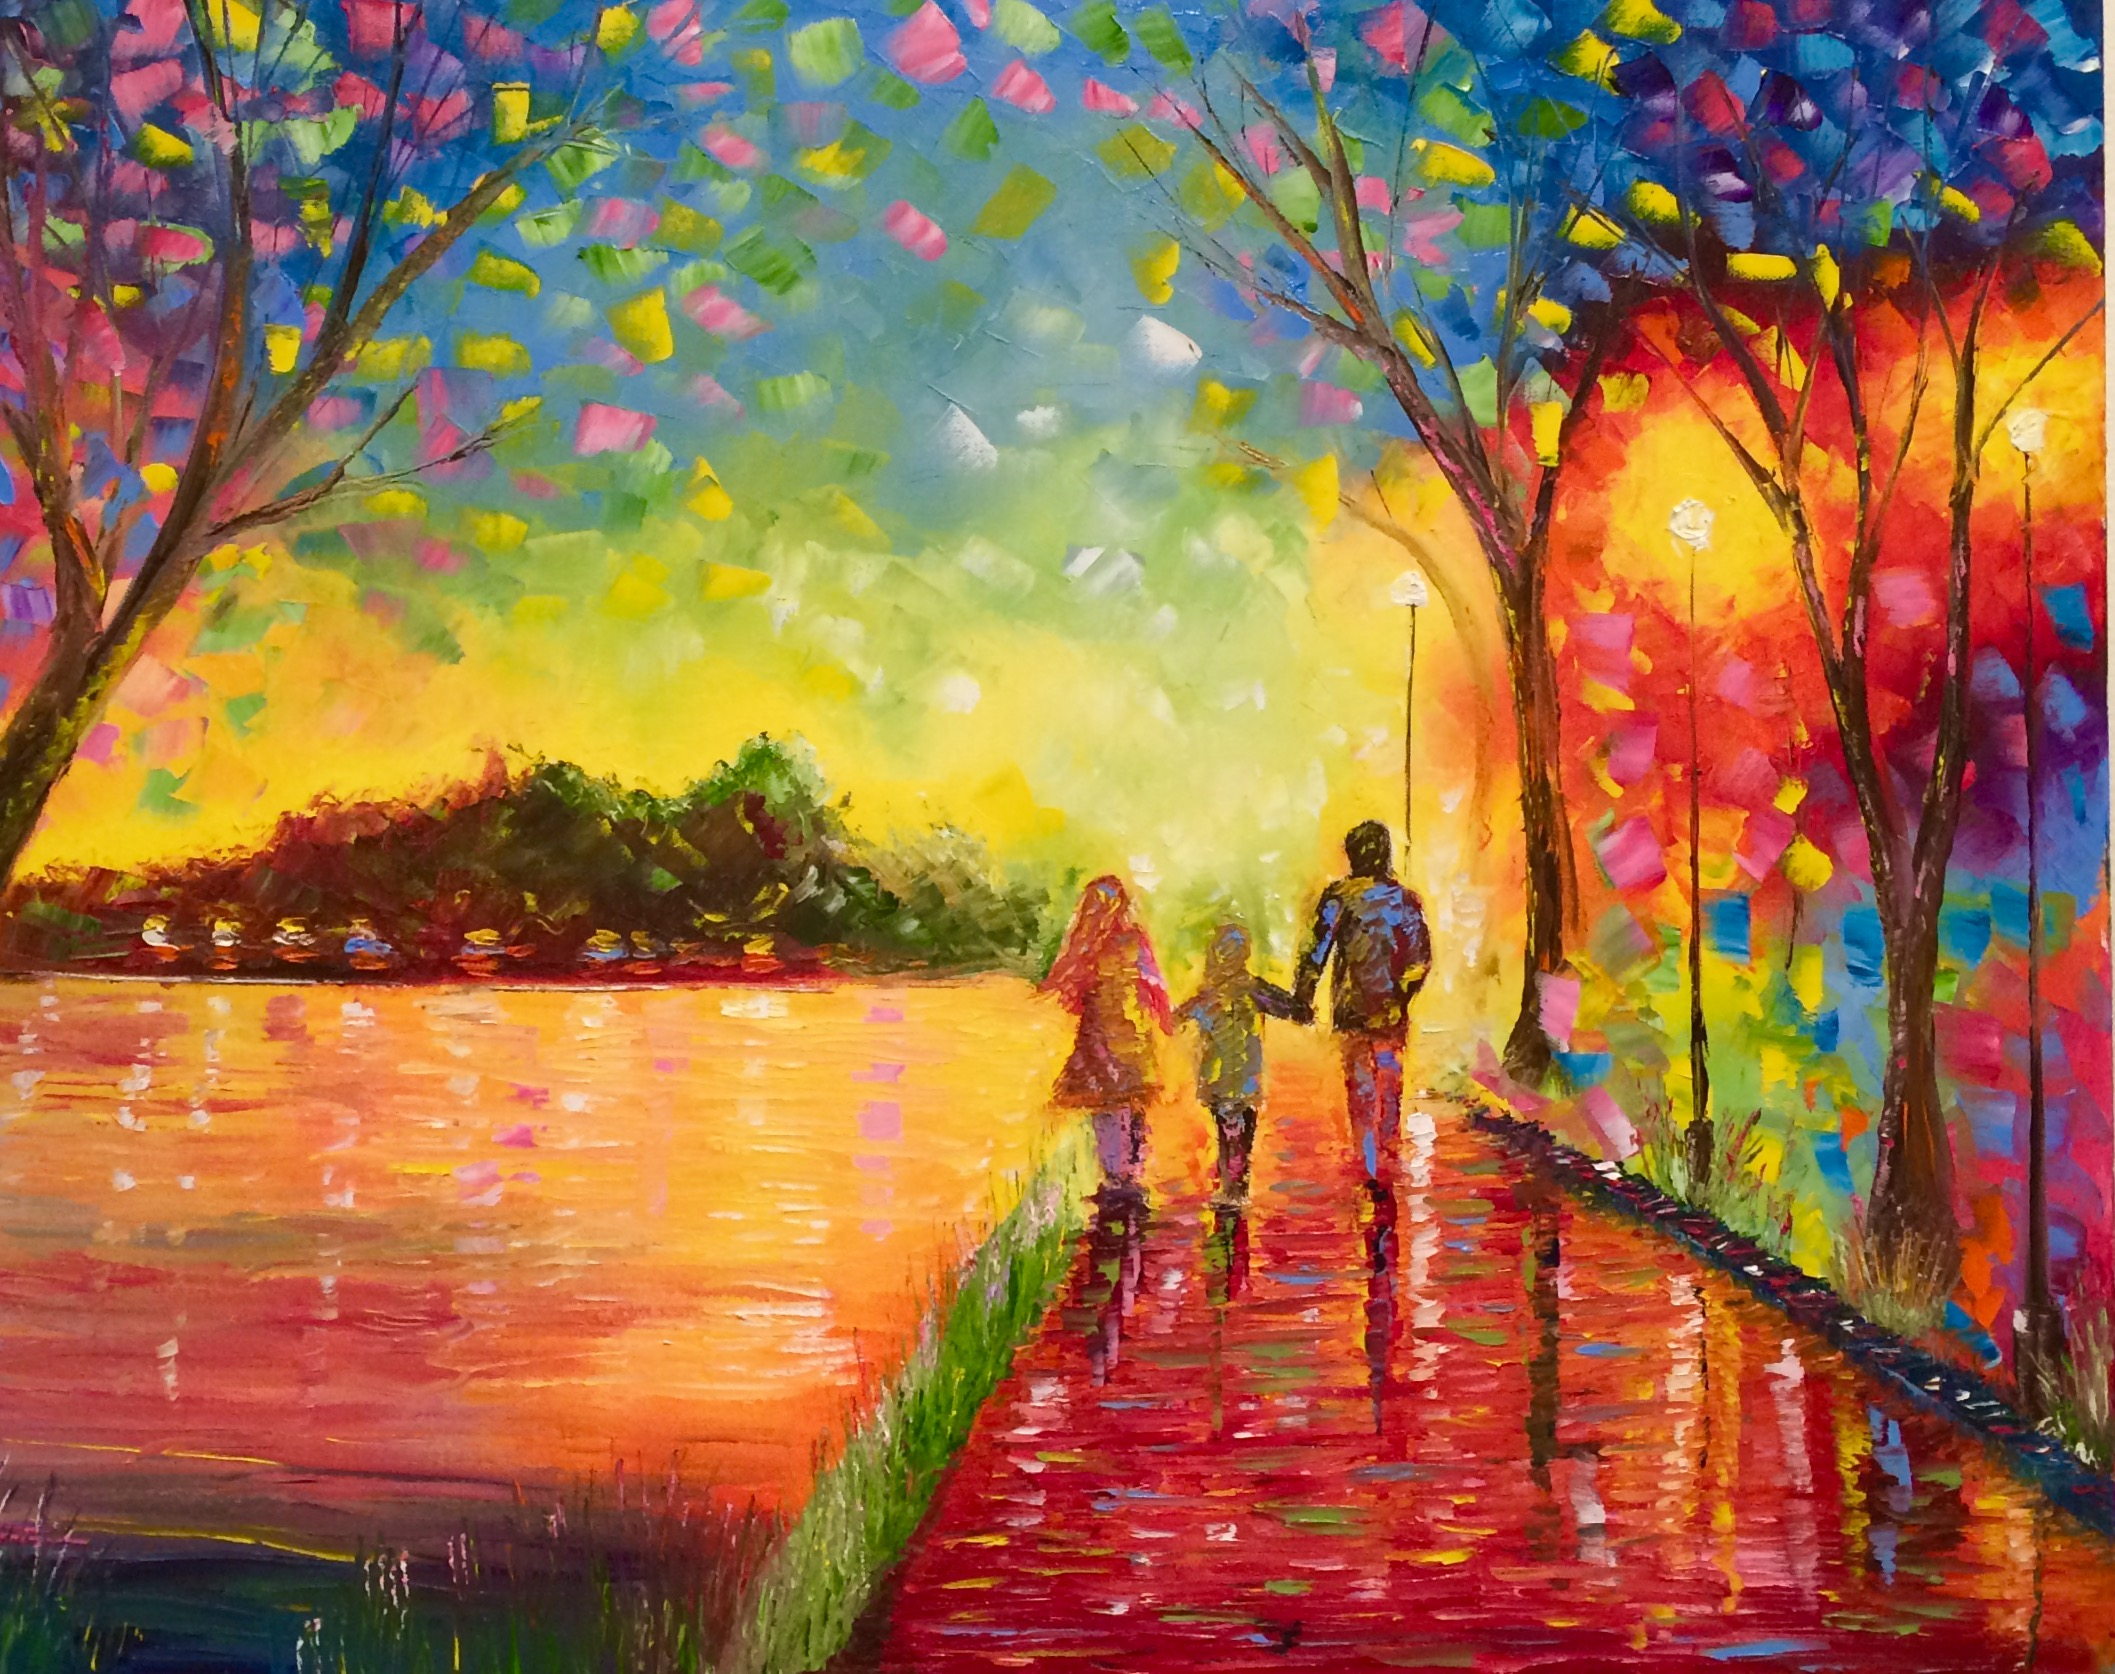 Walking Along the River artwork by Greg Gilreath - art listed for sale on Artplode